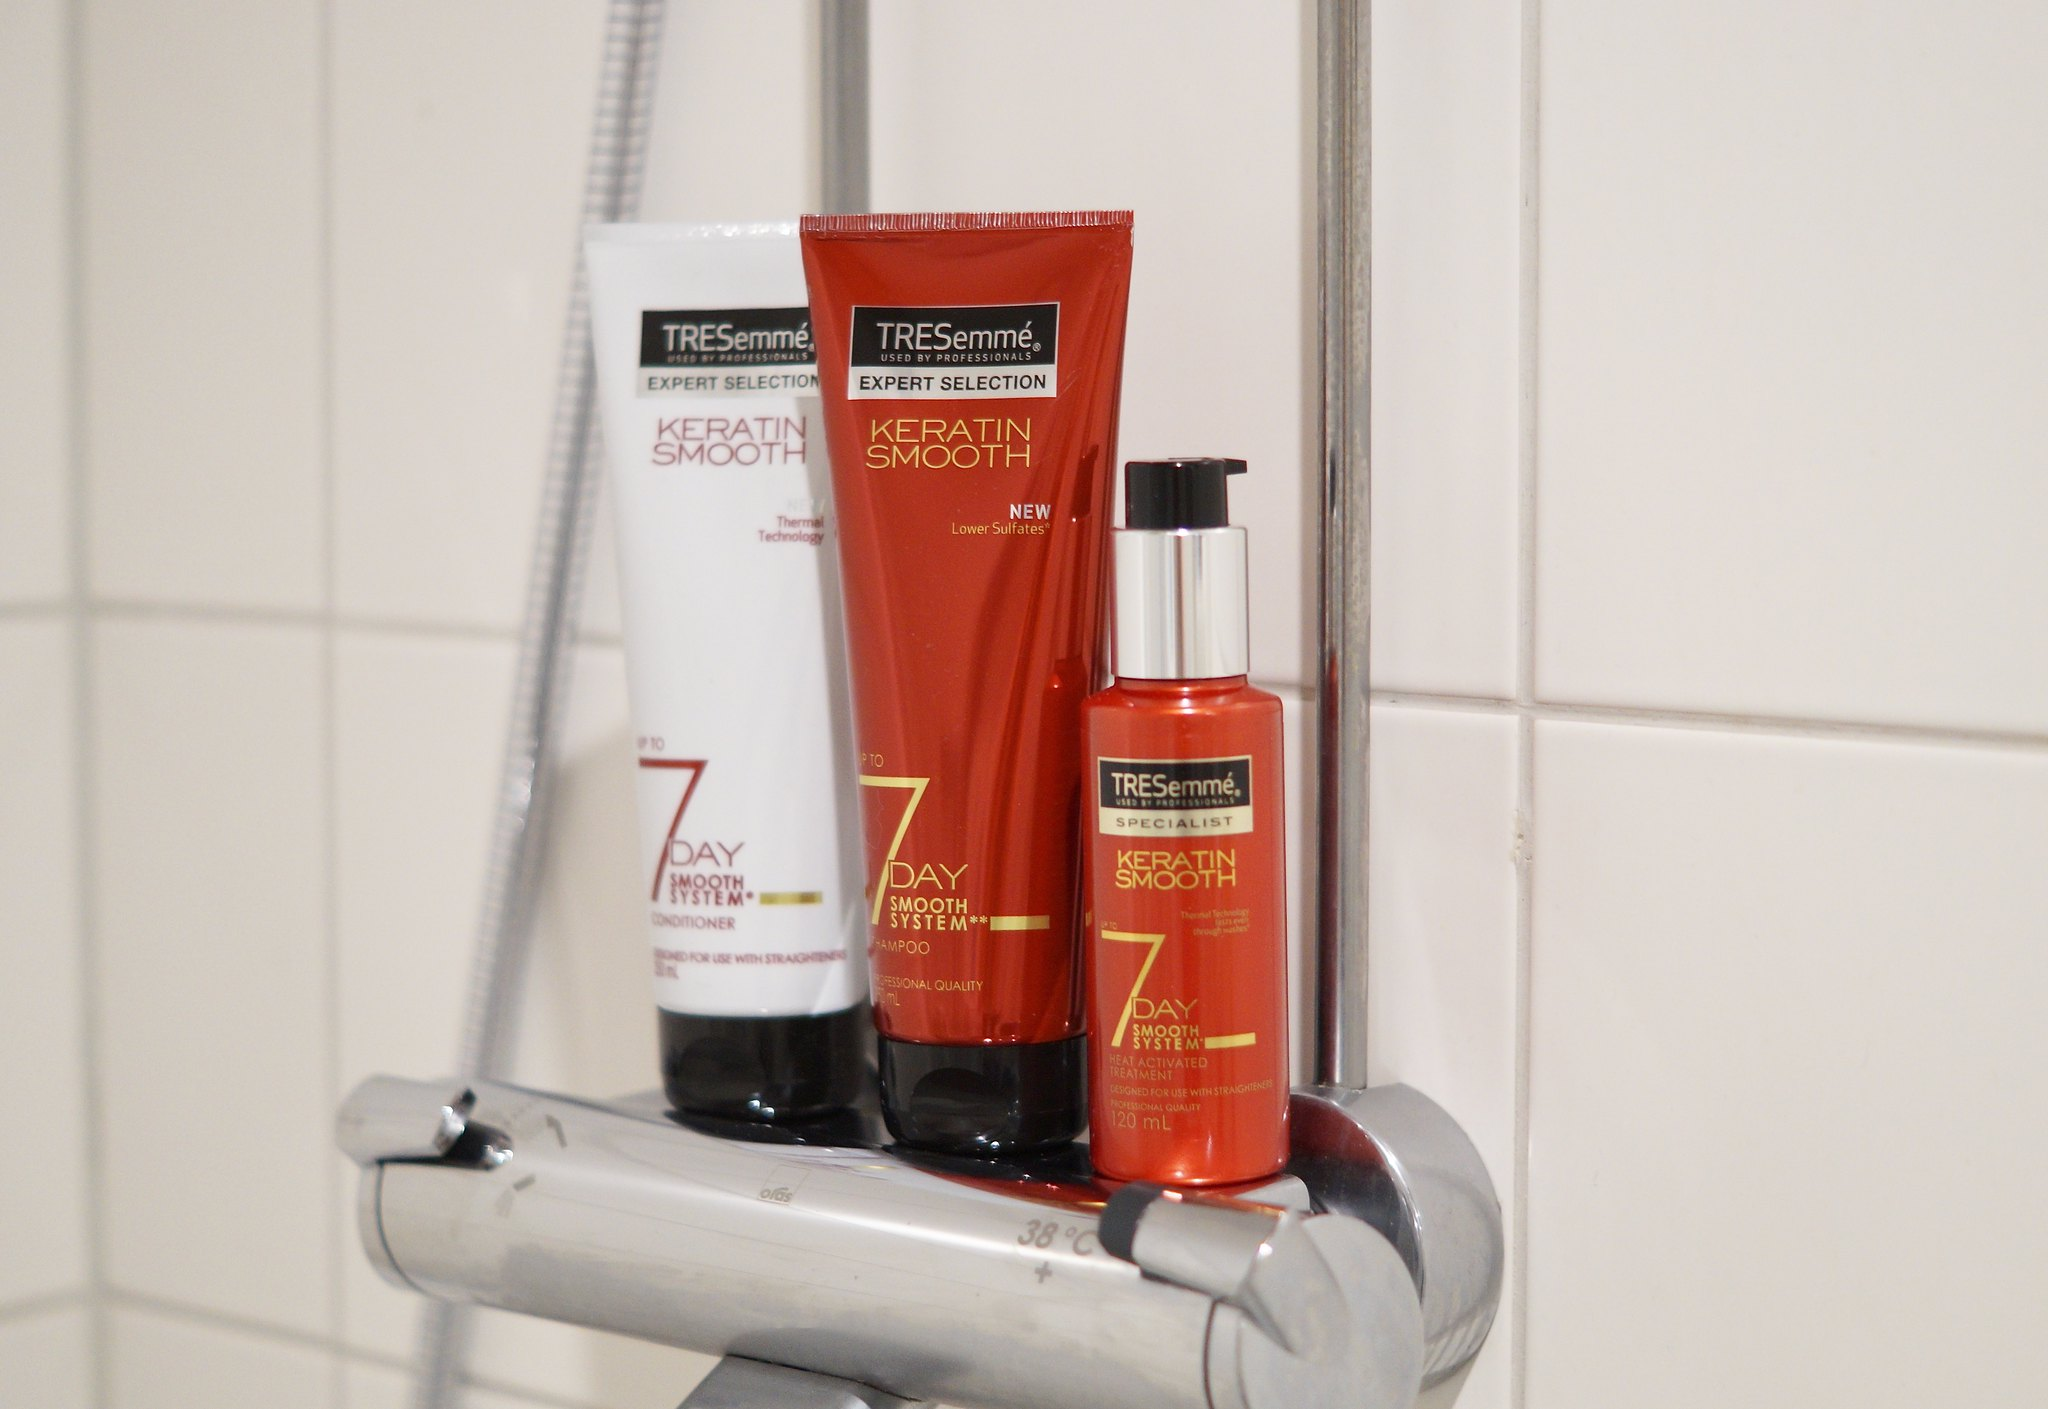 TRESemmé keratin smooth 1